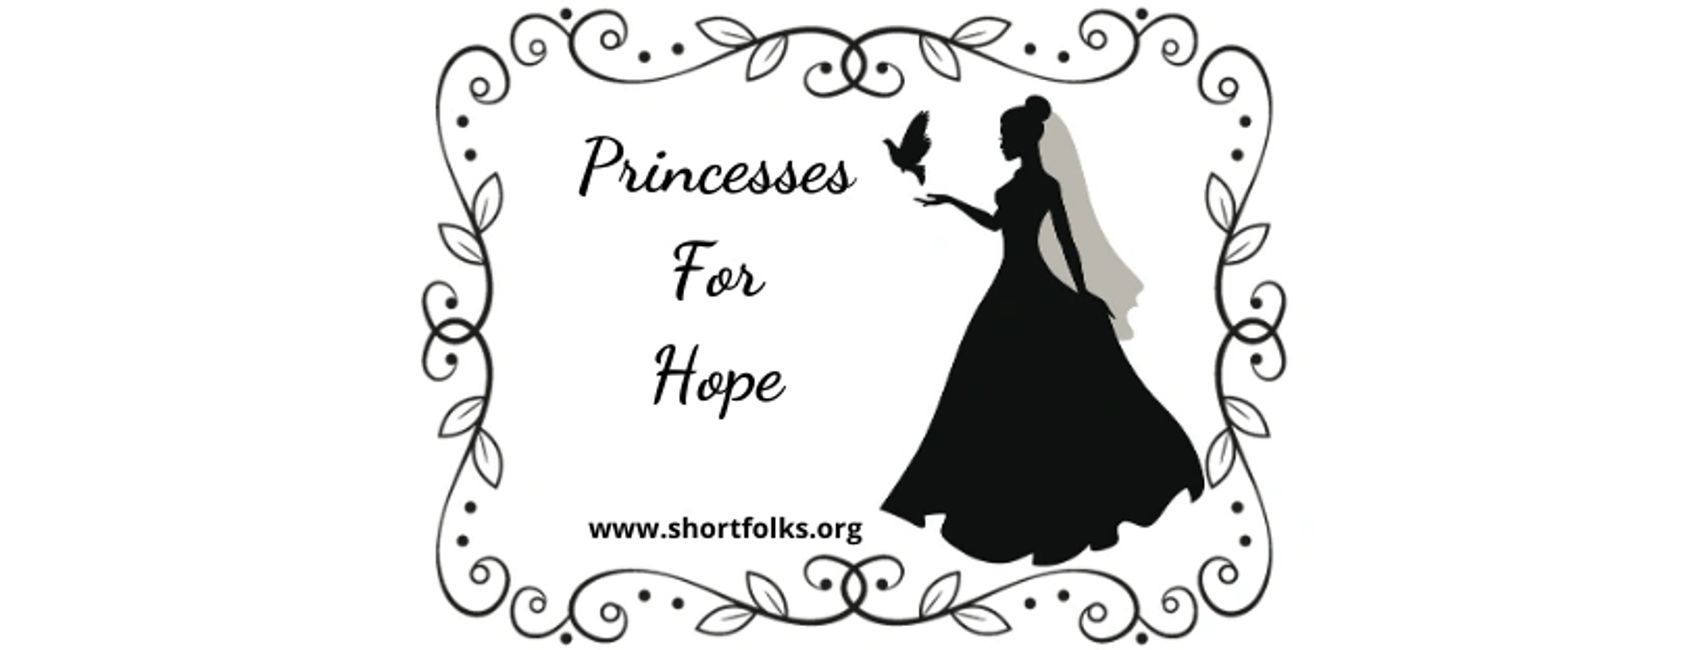 Short Folks For Hope Foundation's Princesses For Hope Project. Logo by Kristen Short.